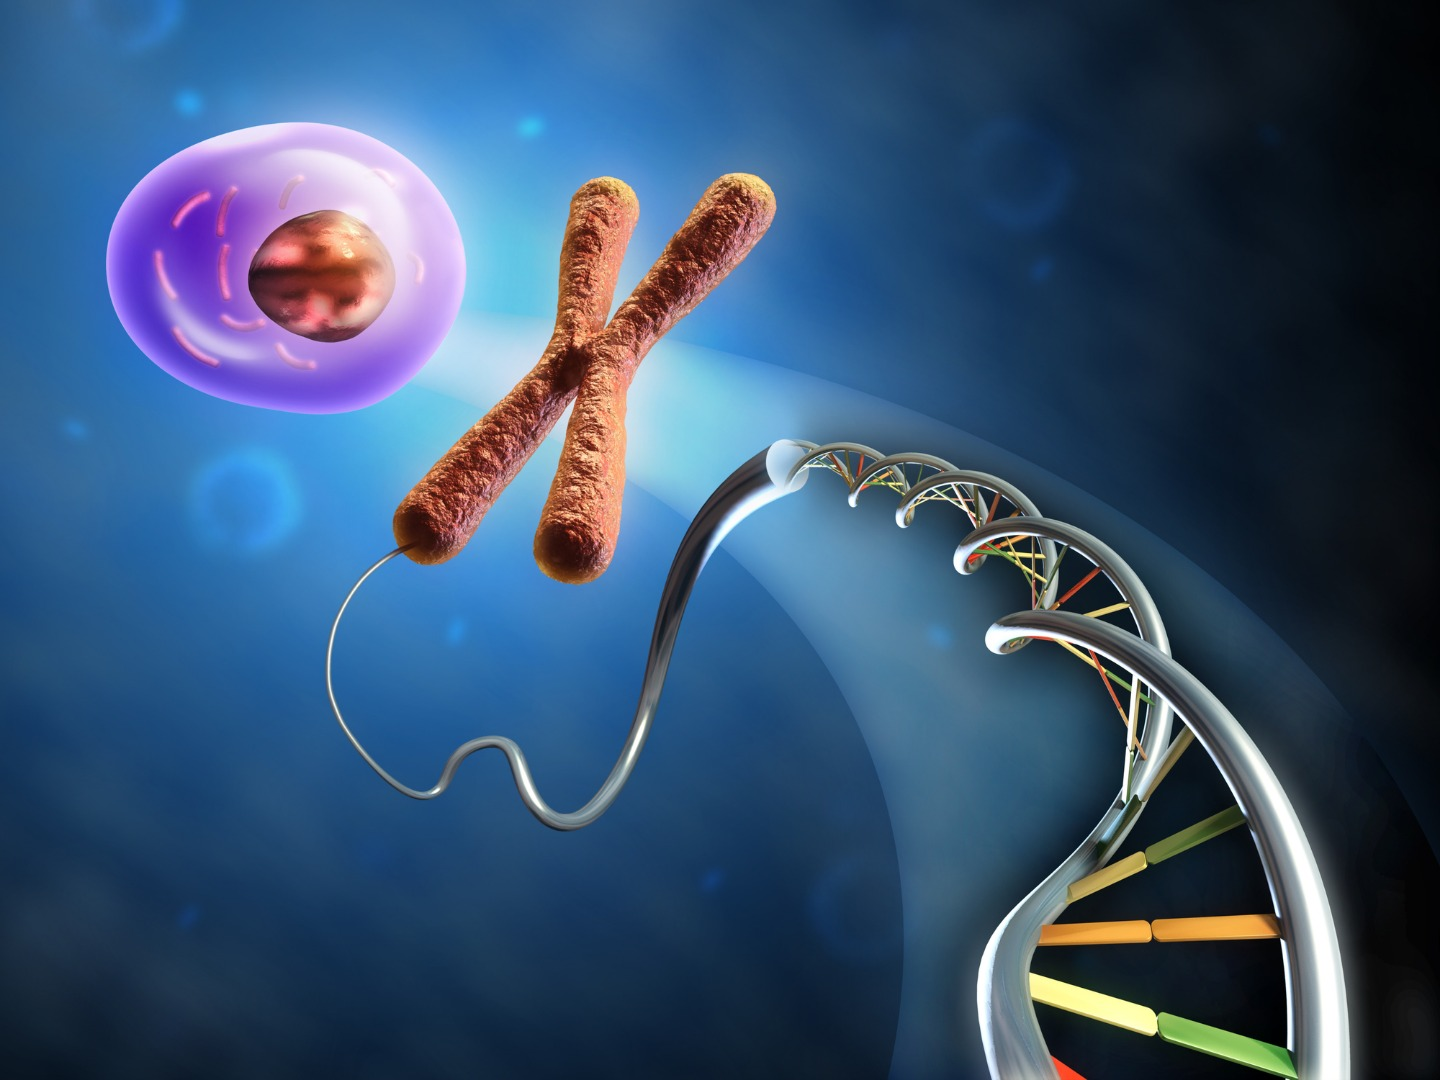 Epigenetic inheritance, and how the way you live your life could affect your offspring